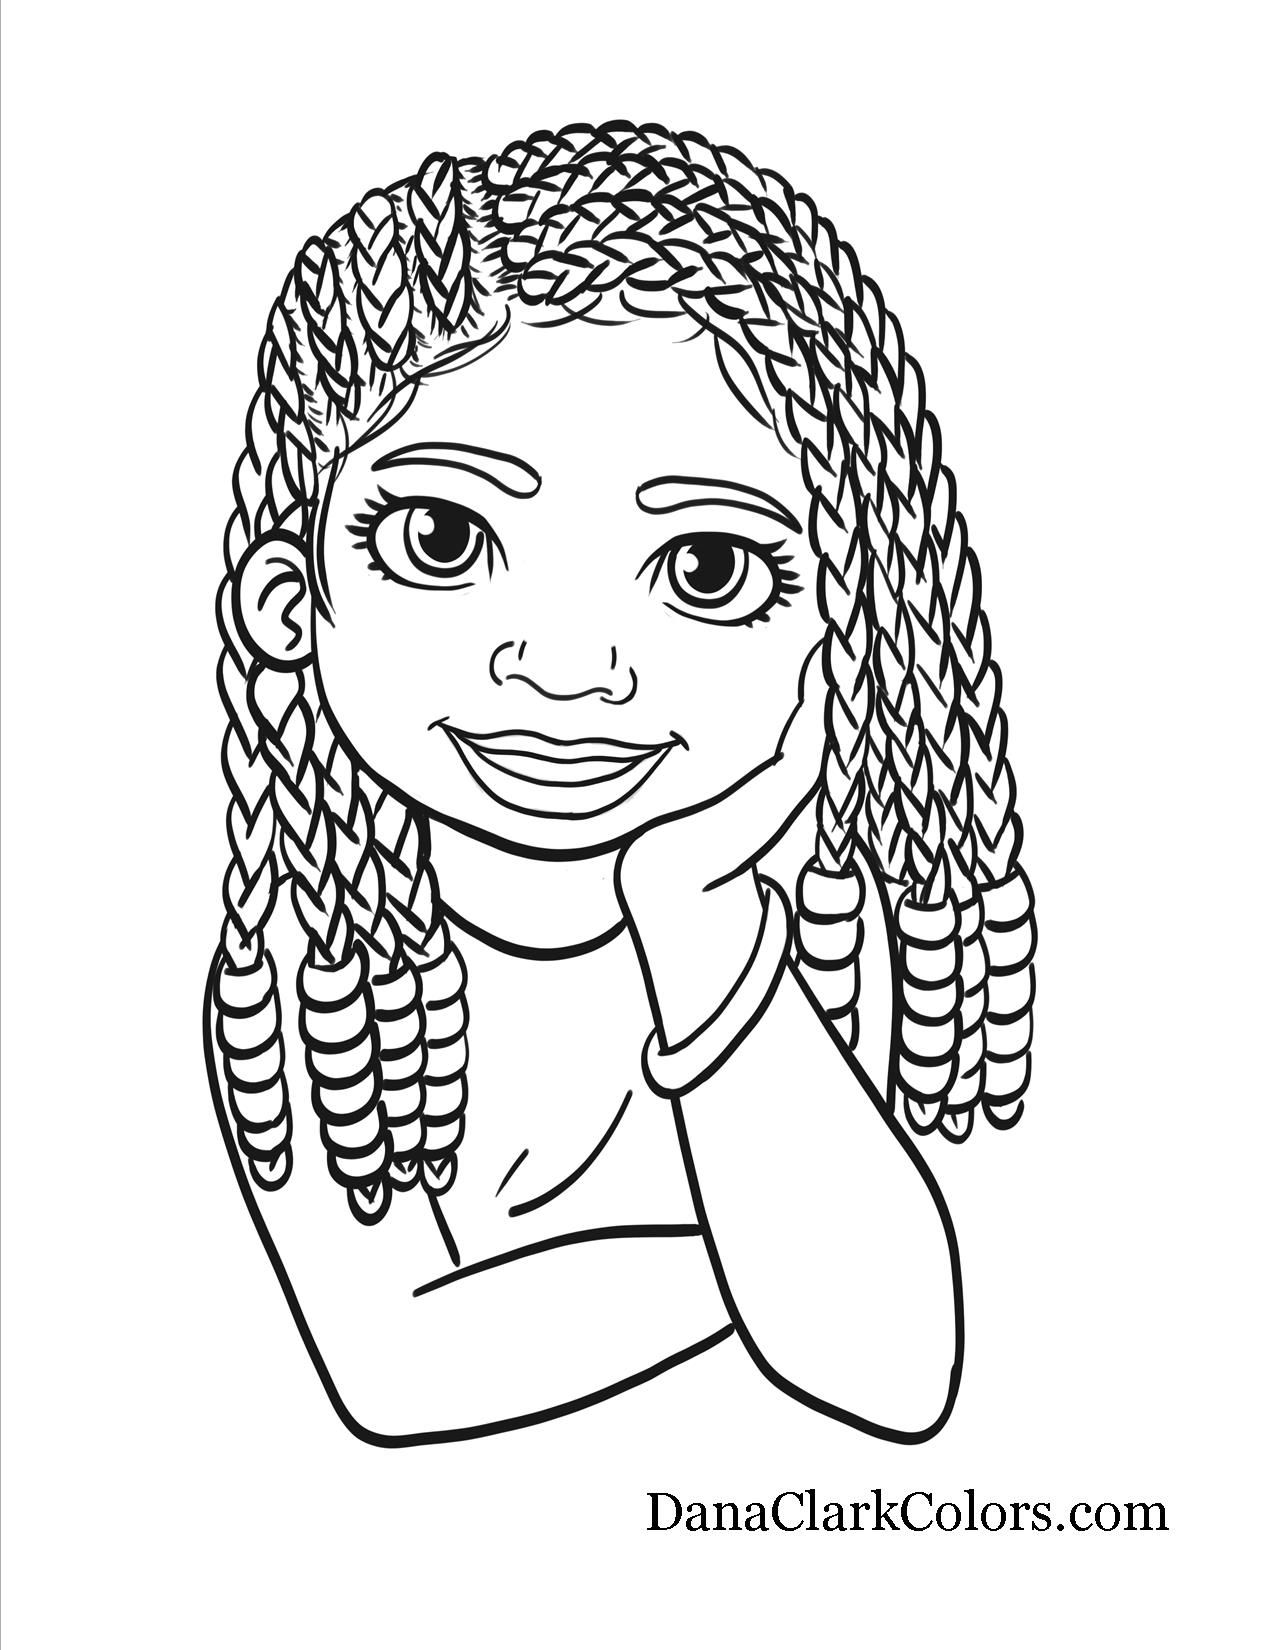 Afro Clipart Coloring Page Afro Coloring Page Transparent Free